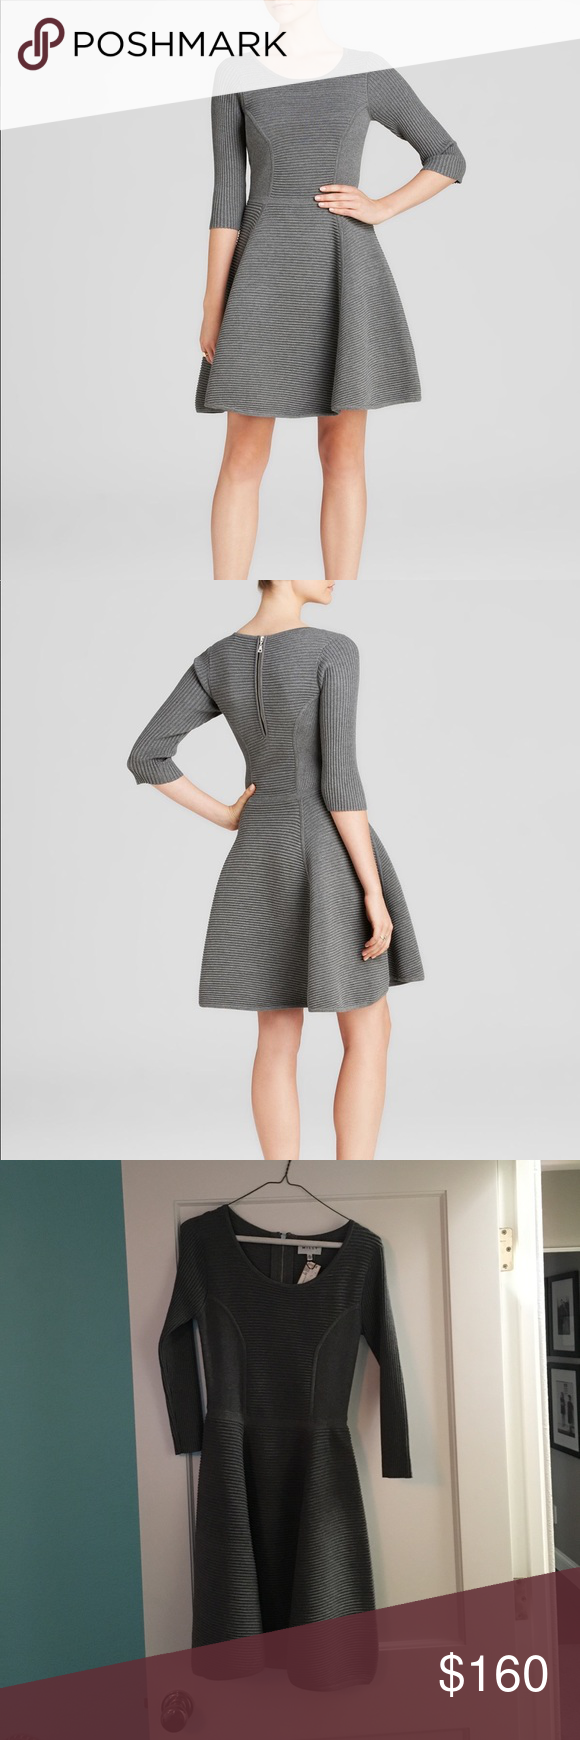 Milly Grey Ribbed Fit and Flare Dress NWT